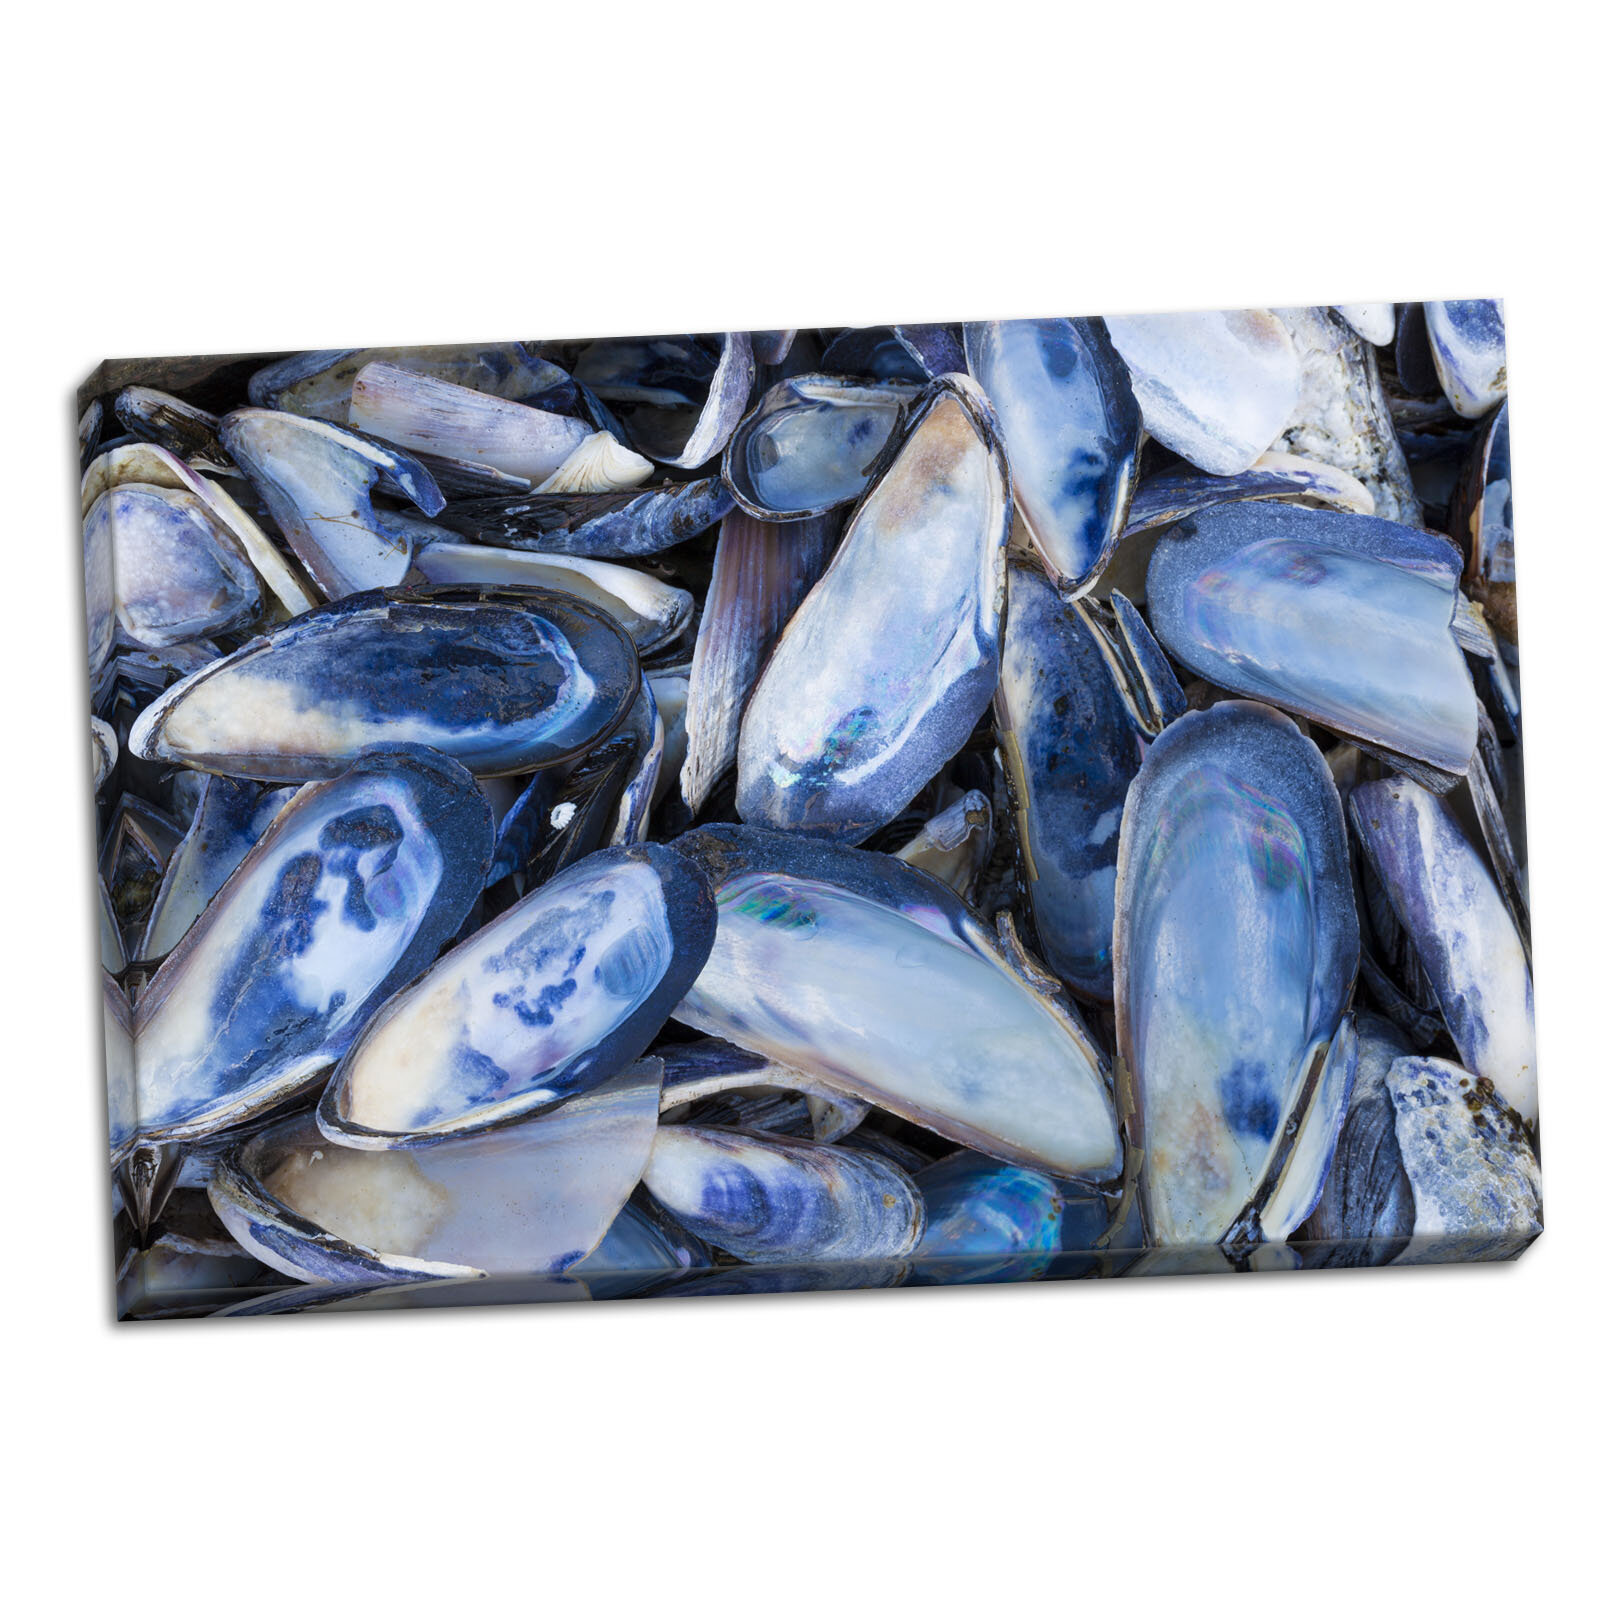 Breakwater Bay Mussels I Photographic Print On Wrapped Canvas Wayfair